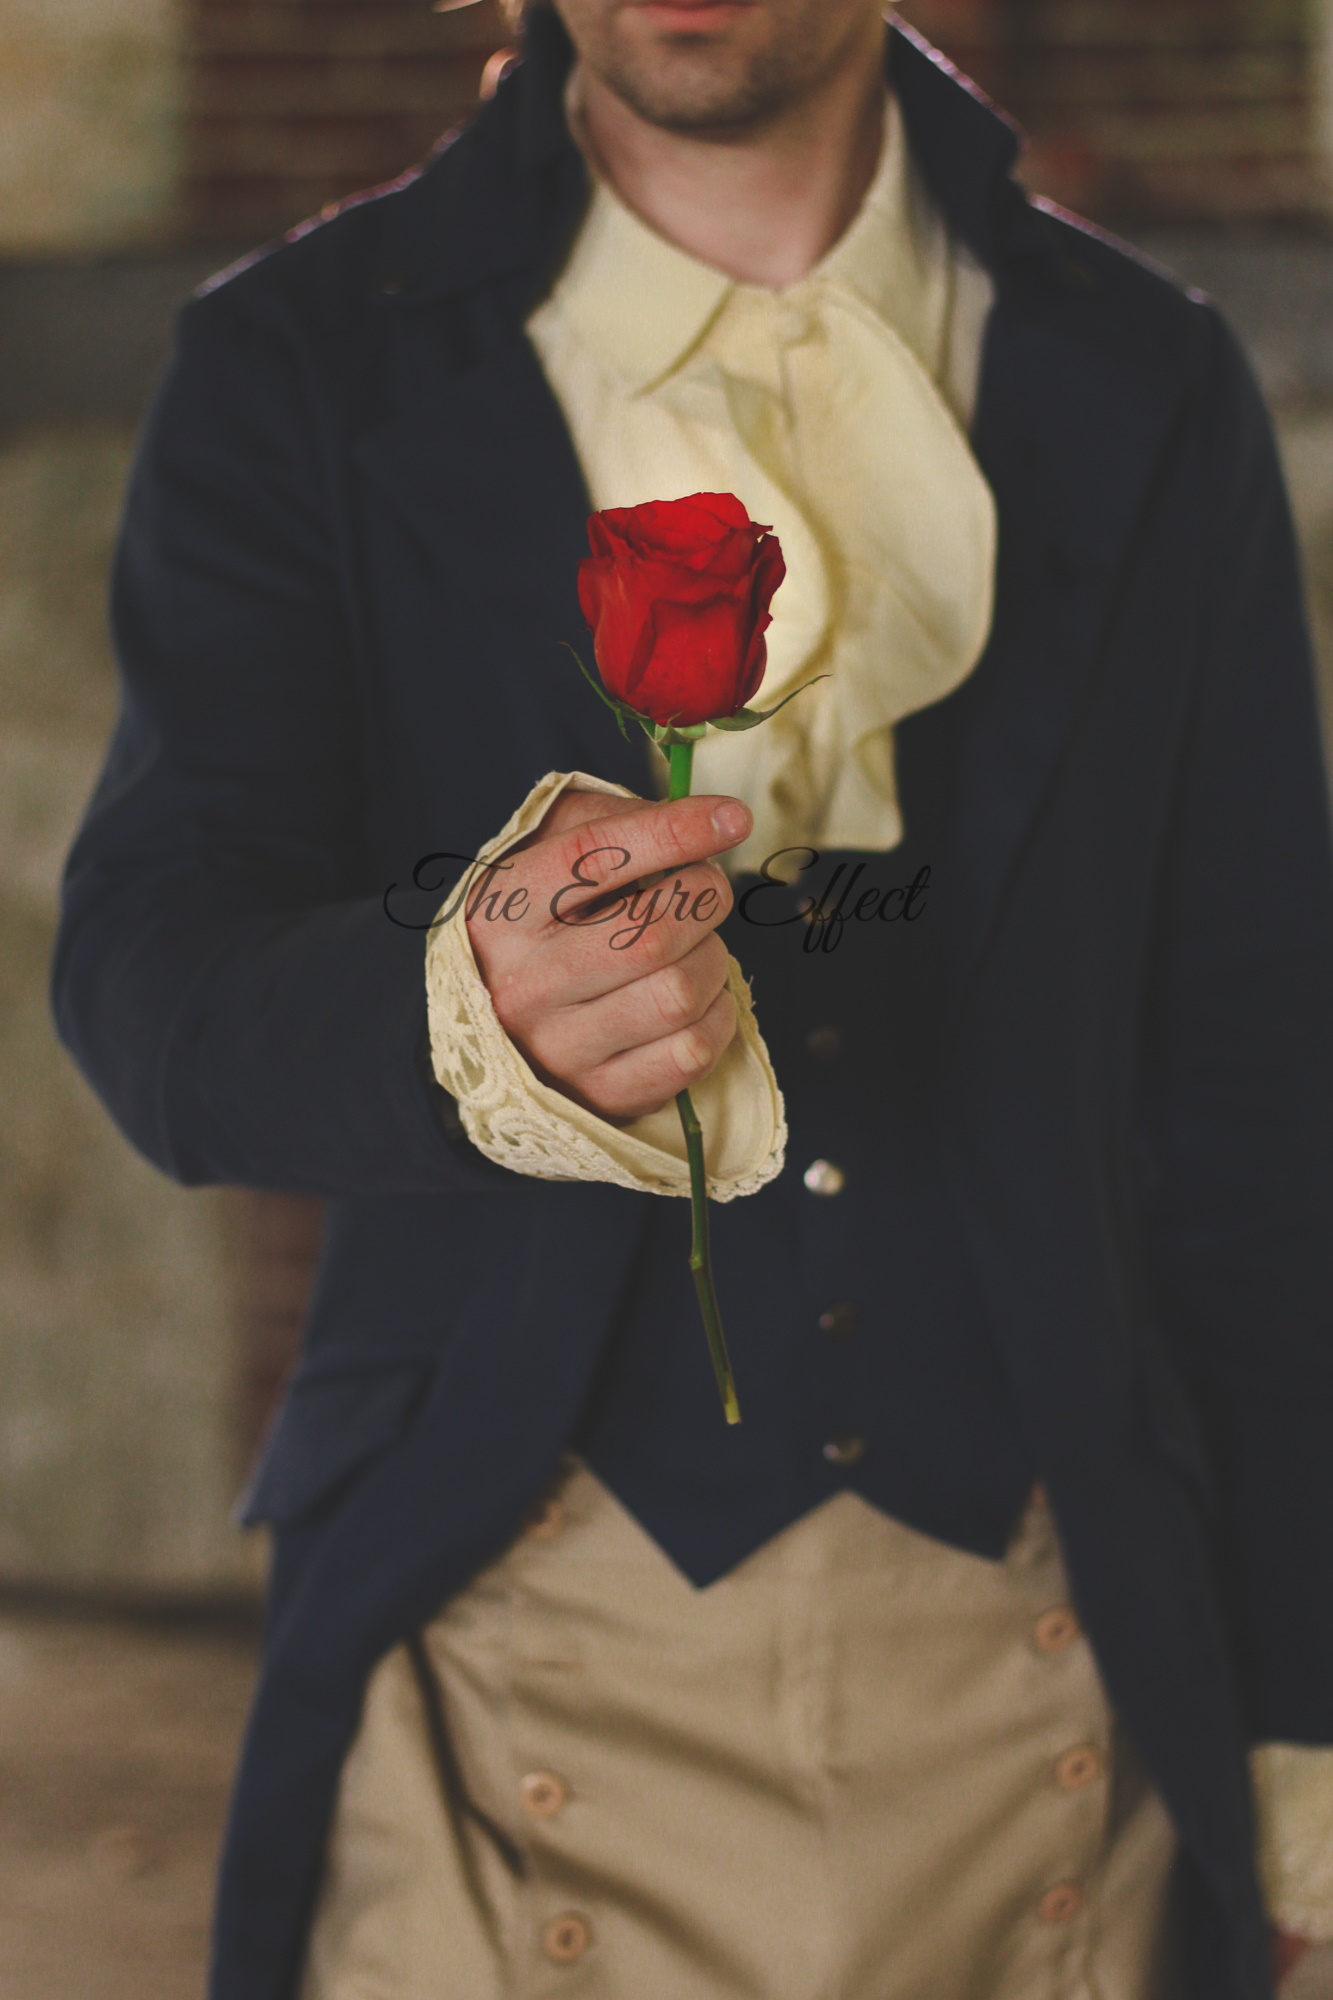 Beast offering Belle a rose photoshoot